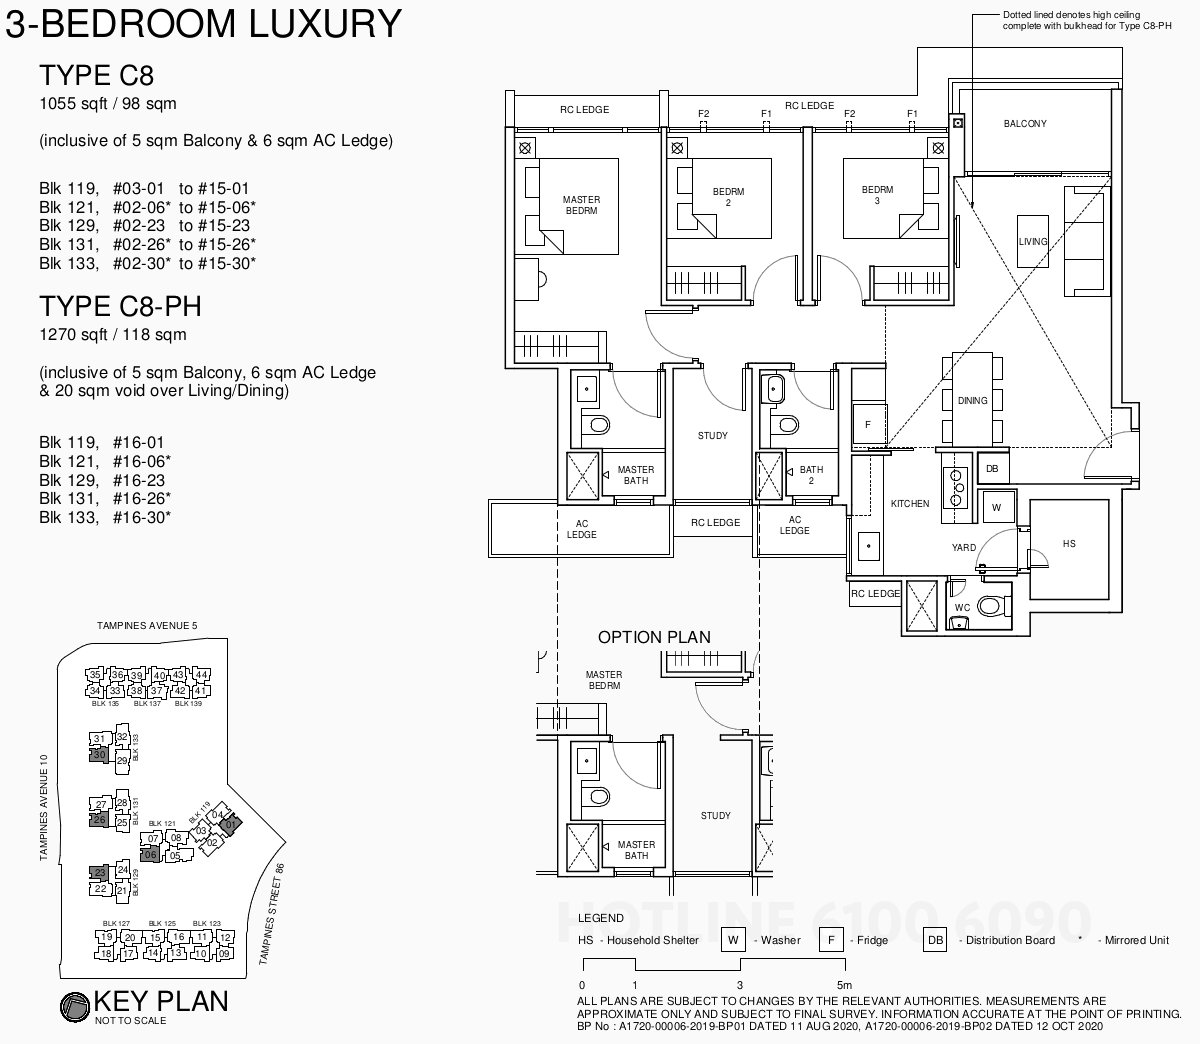 Parc Central Residences Floor Plan . 3BR Luxury Type C8